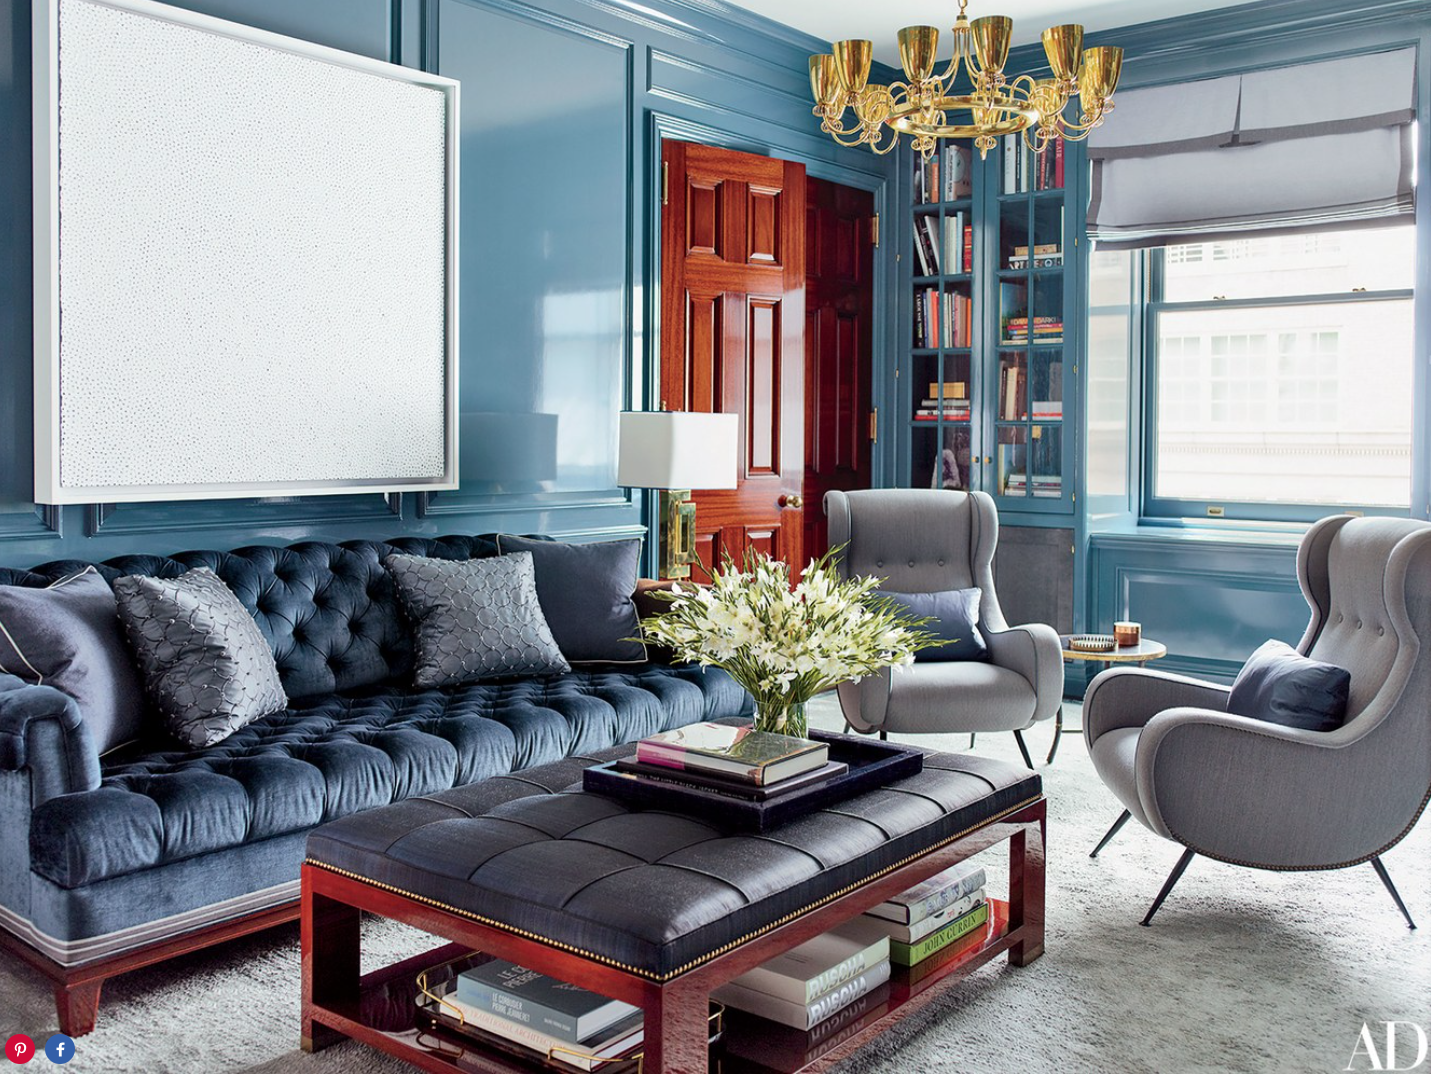 Walls painted in a Sherwin-Williams high-gloss oil serve as the backdrop for a Yayoi Kusama canvas in the library; the sofa is upholstered in a Robert Allen velvet, and the armchairs are vintage Paolo Buffa designs.